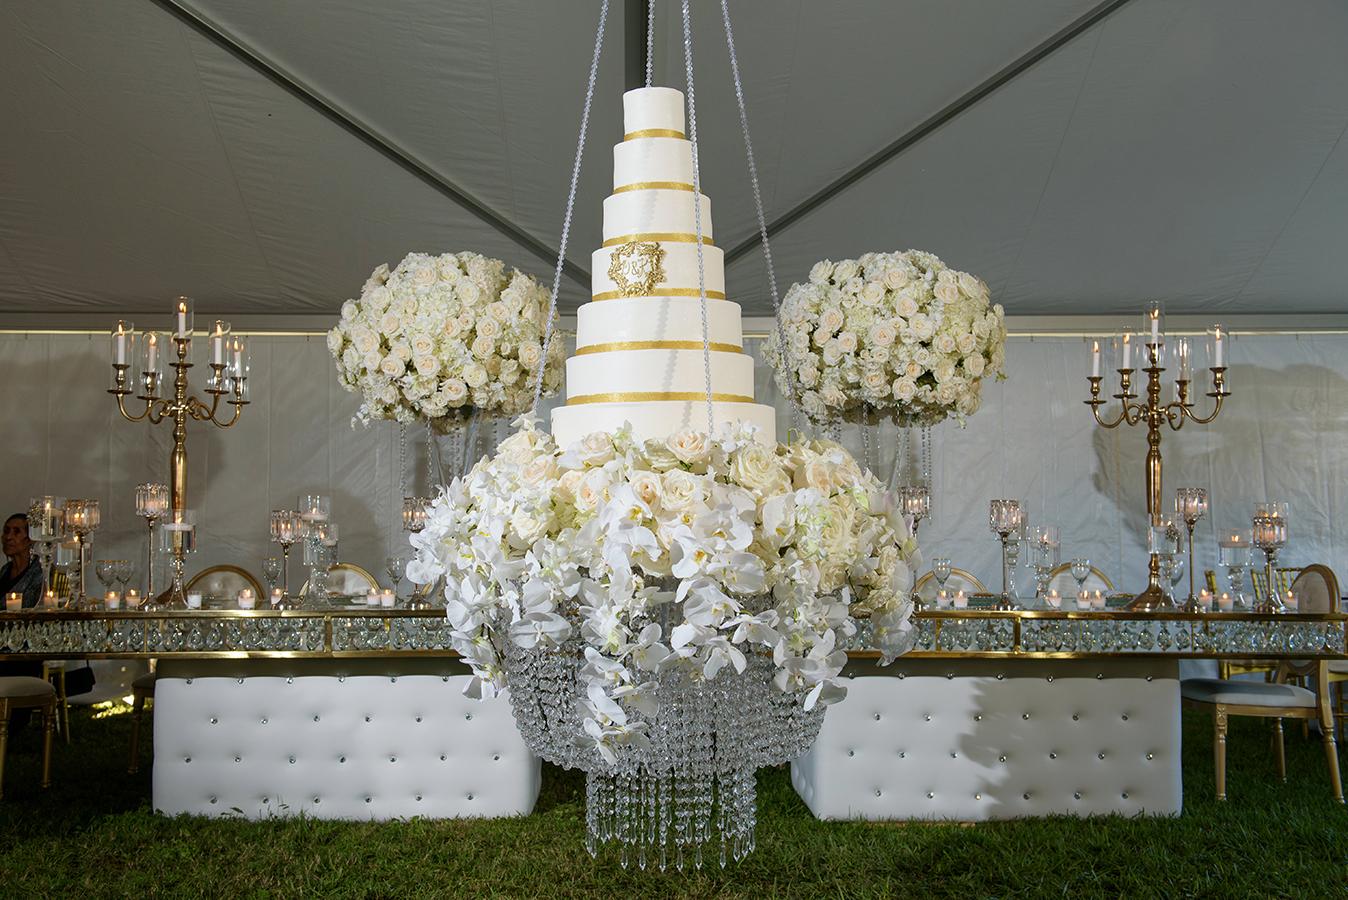 A suspended 7-tier cake added the wow factor to Doliecha and Kenneth's wedding.